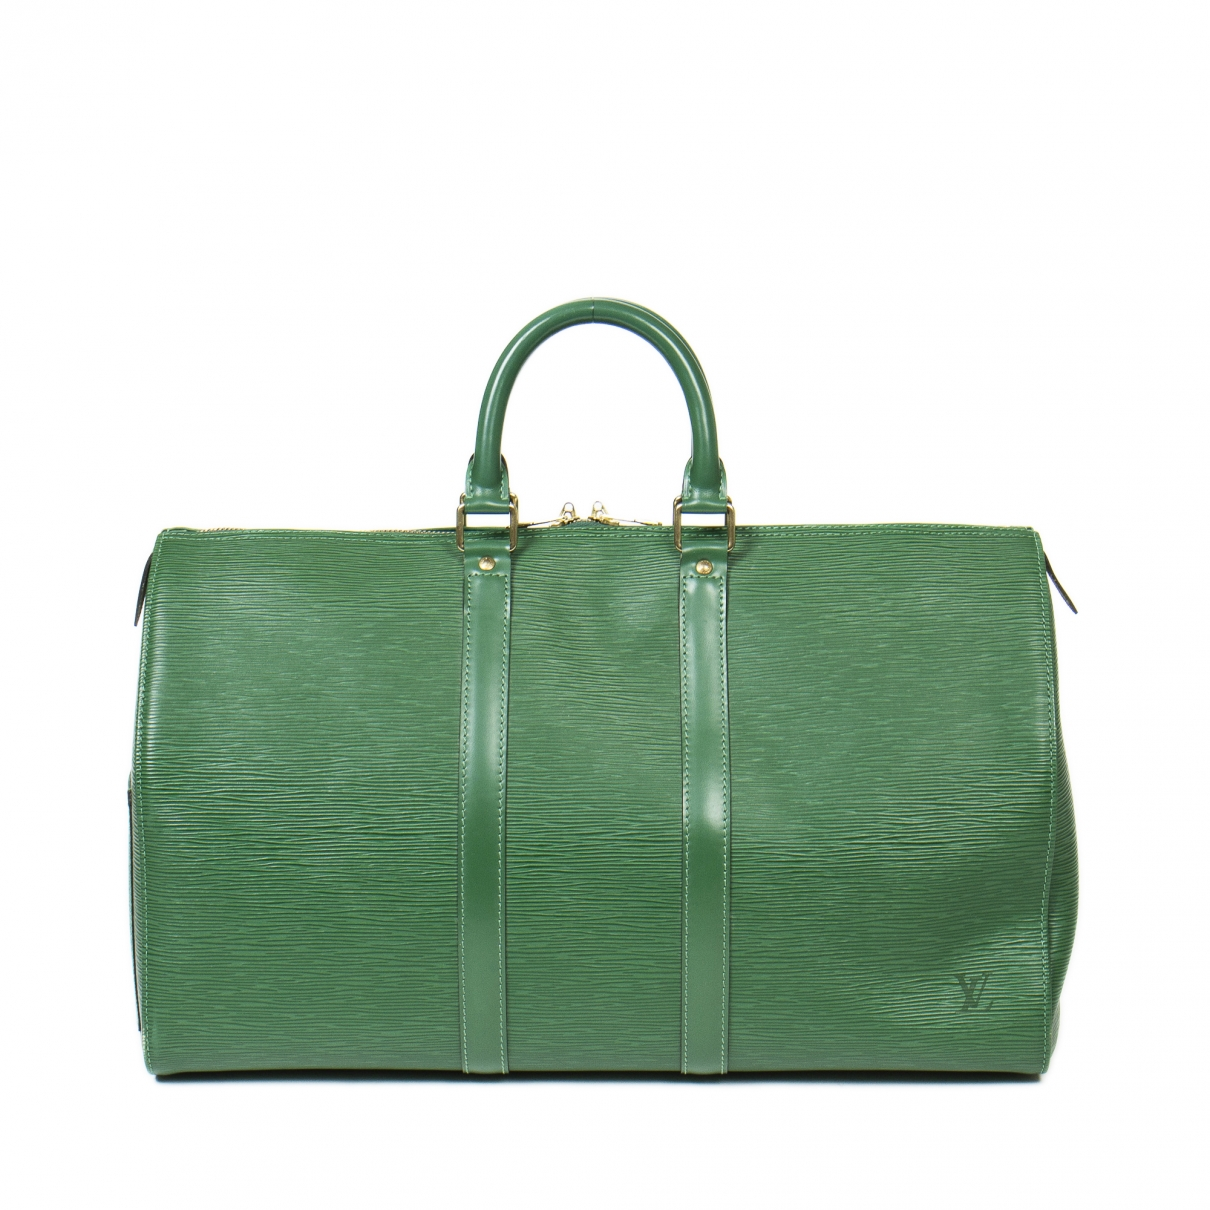 Louis Vuitton Keepall Green Leather Travel bag for Women \N